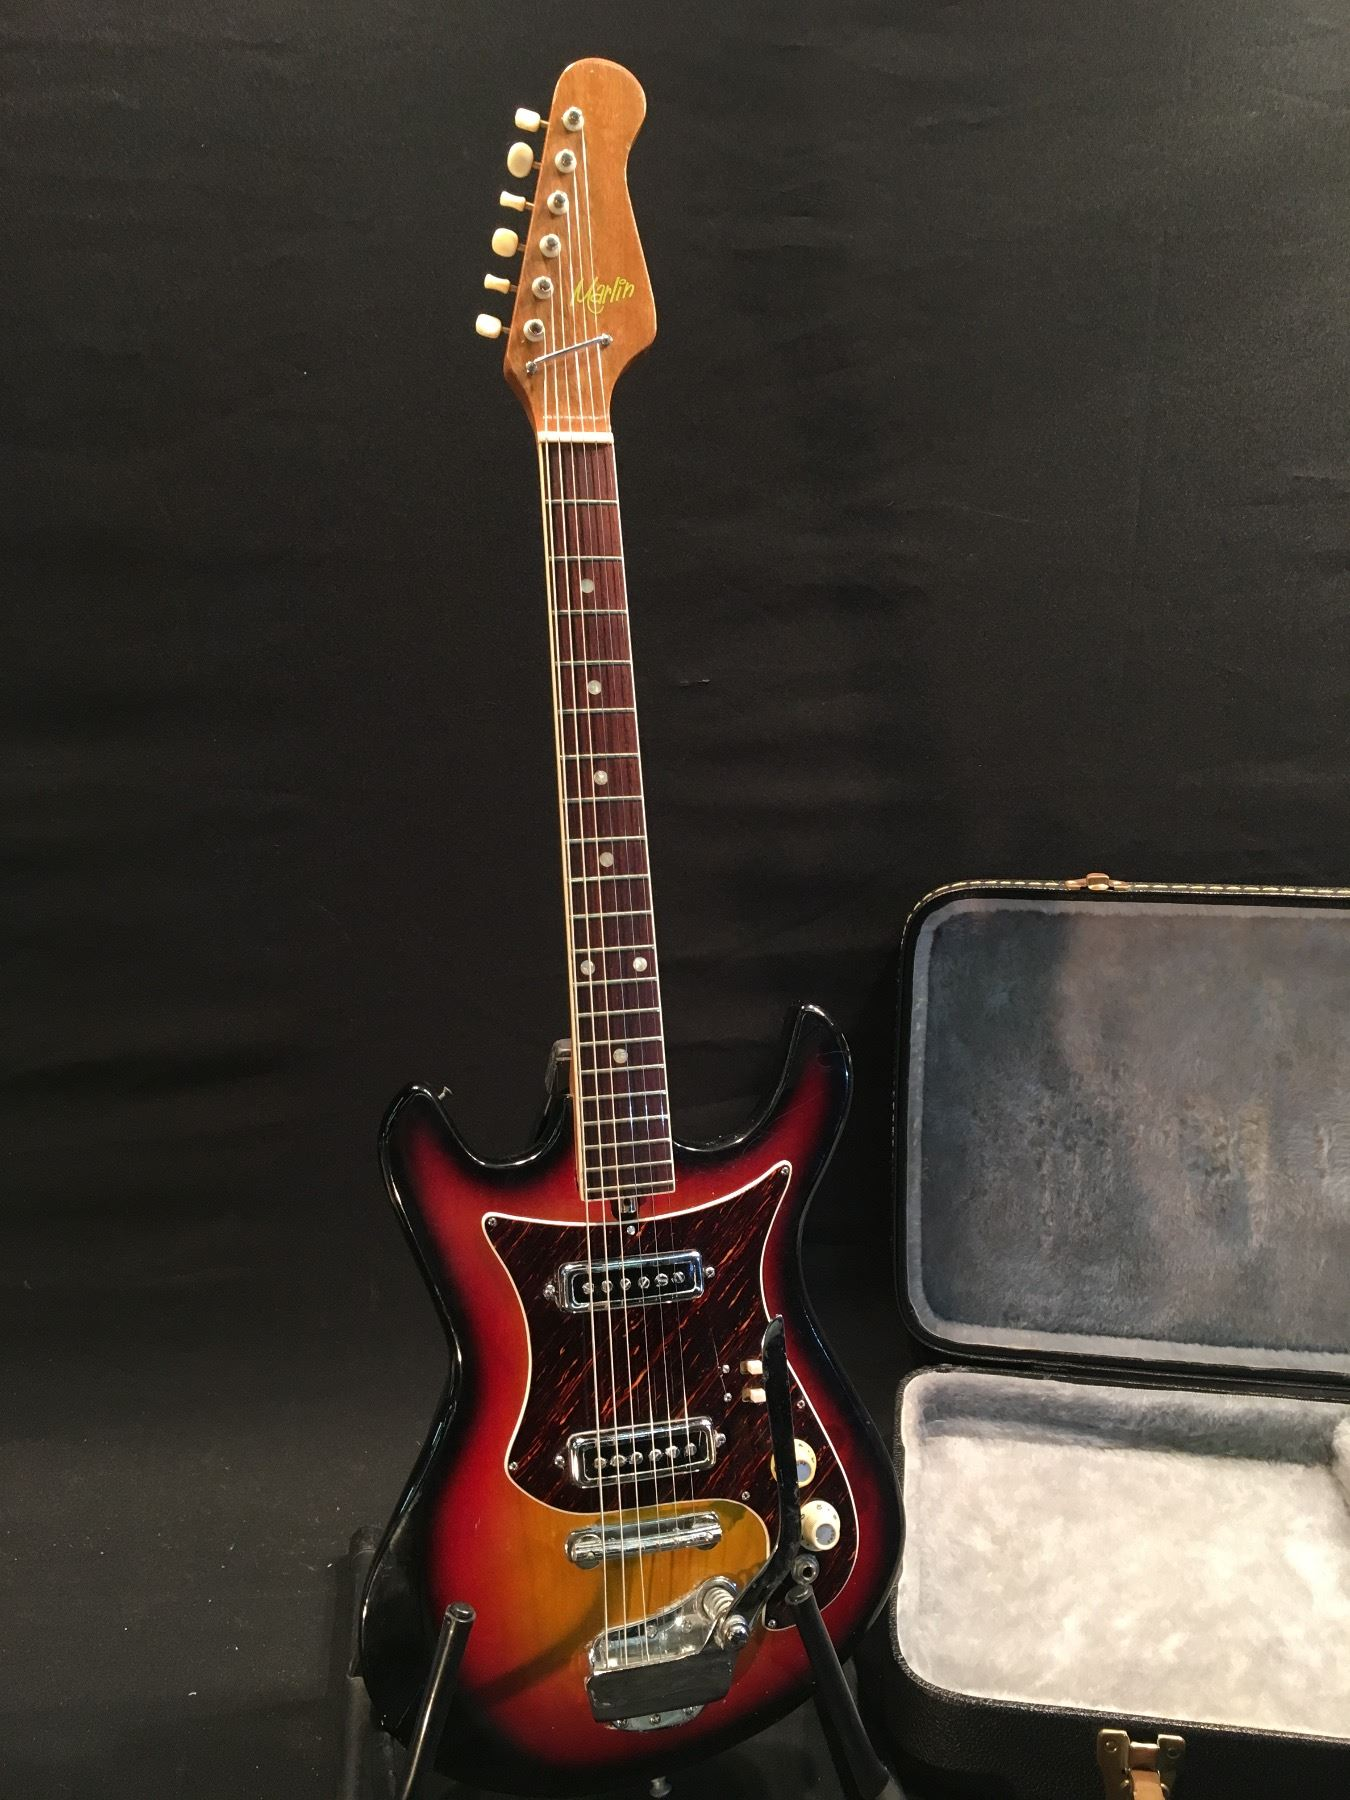 Marlin Electric Guitar With Two Single Coil Idol Pa25 Pickups Humbucker 1 Vol Tone No Switching Image